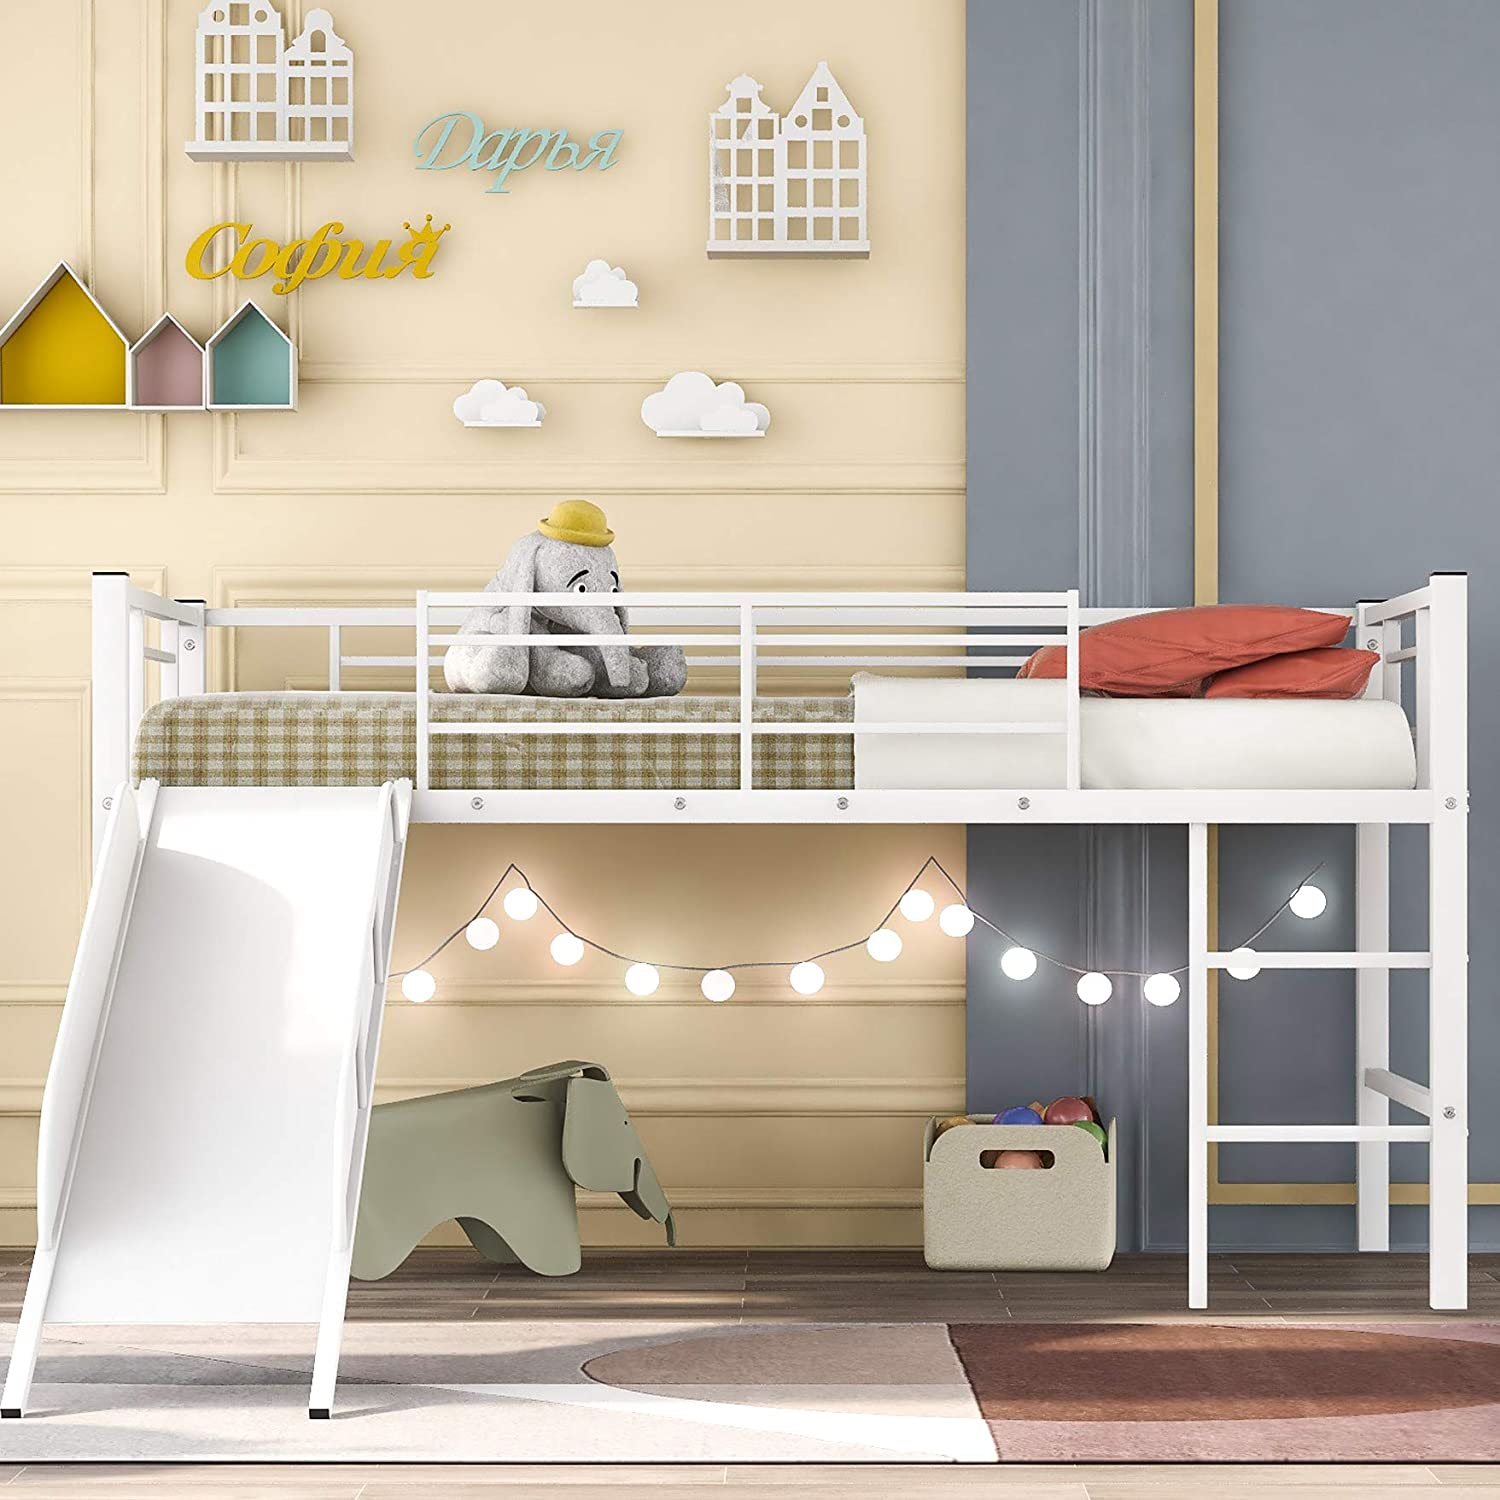 Twin Loft Beds for Kids, Metal Loft Bed with Slide, No Box Spring Required (White Loft Beds)